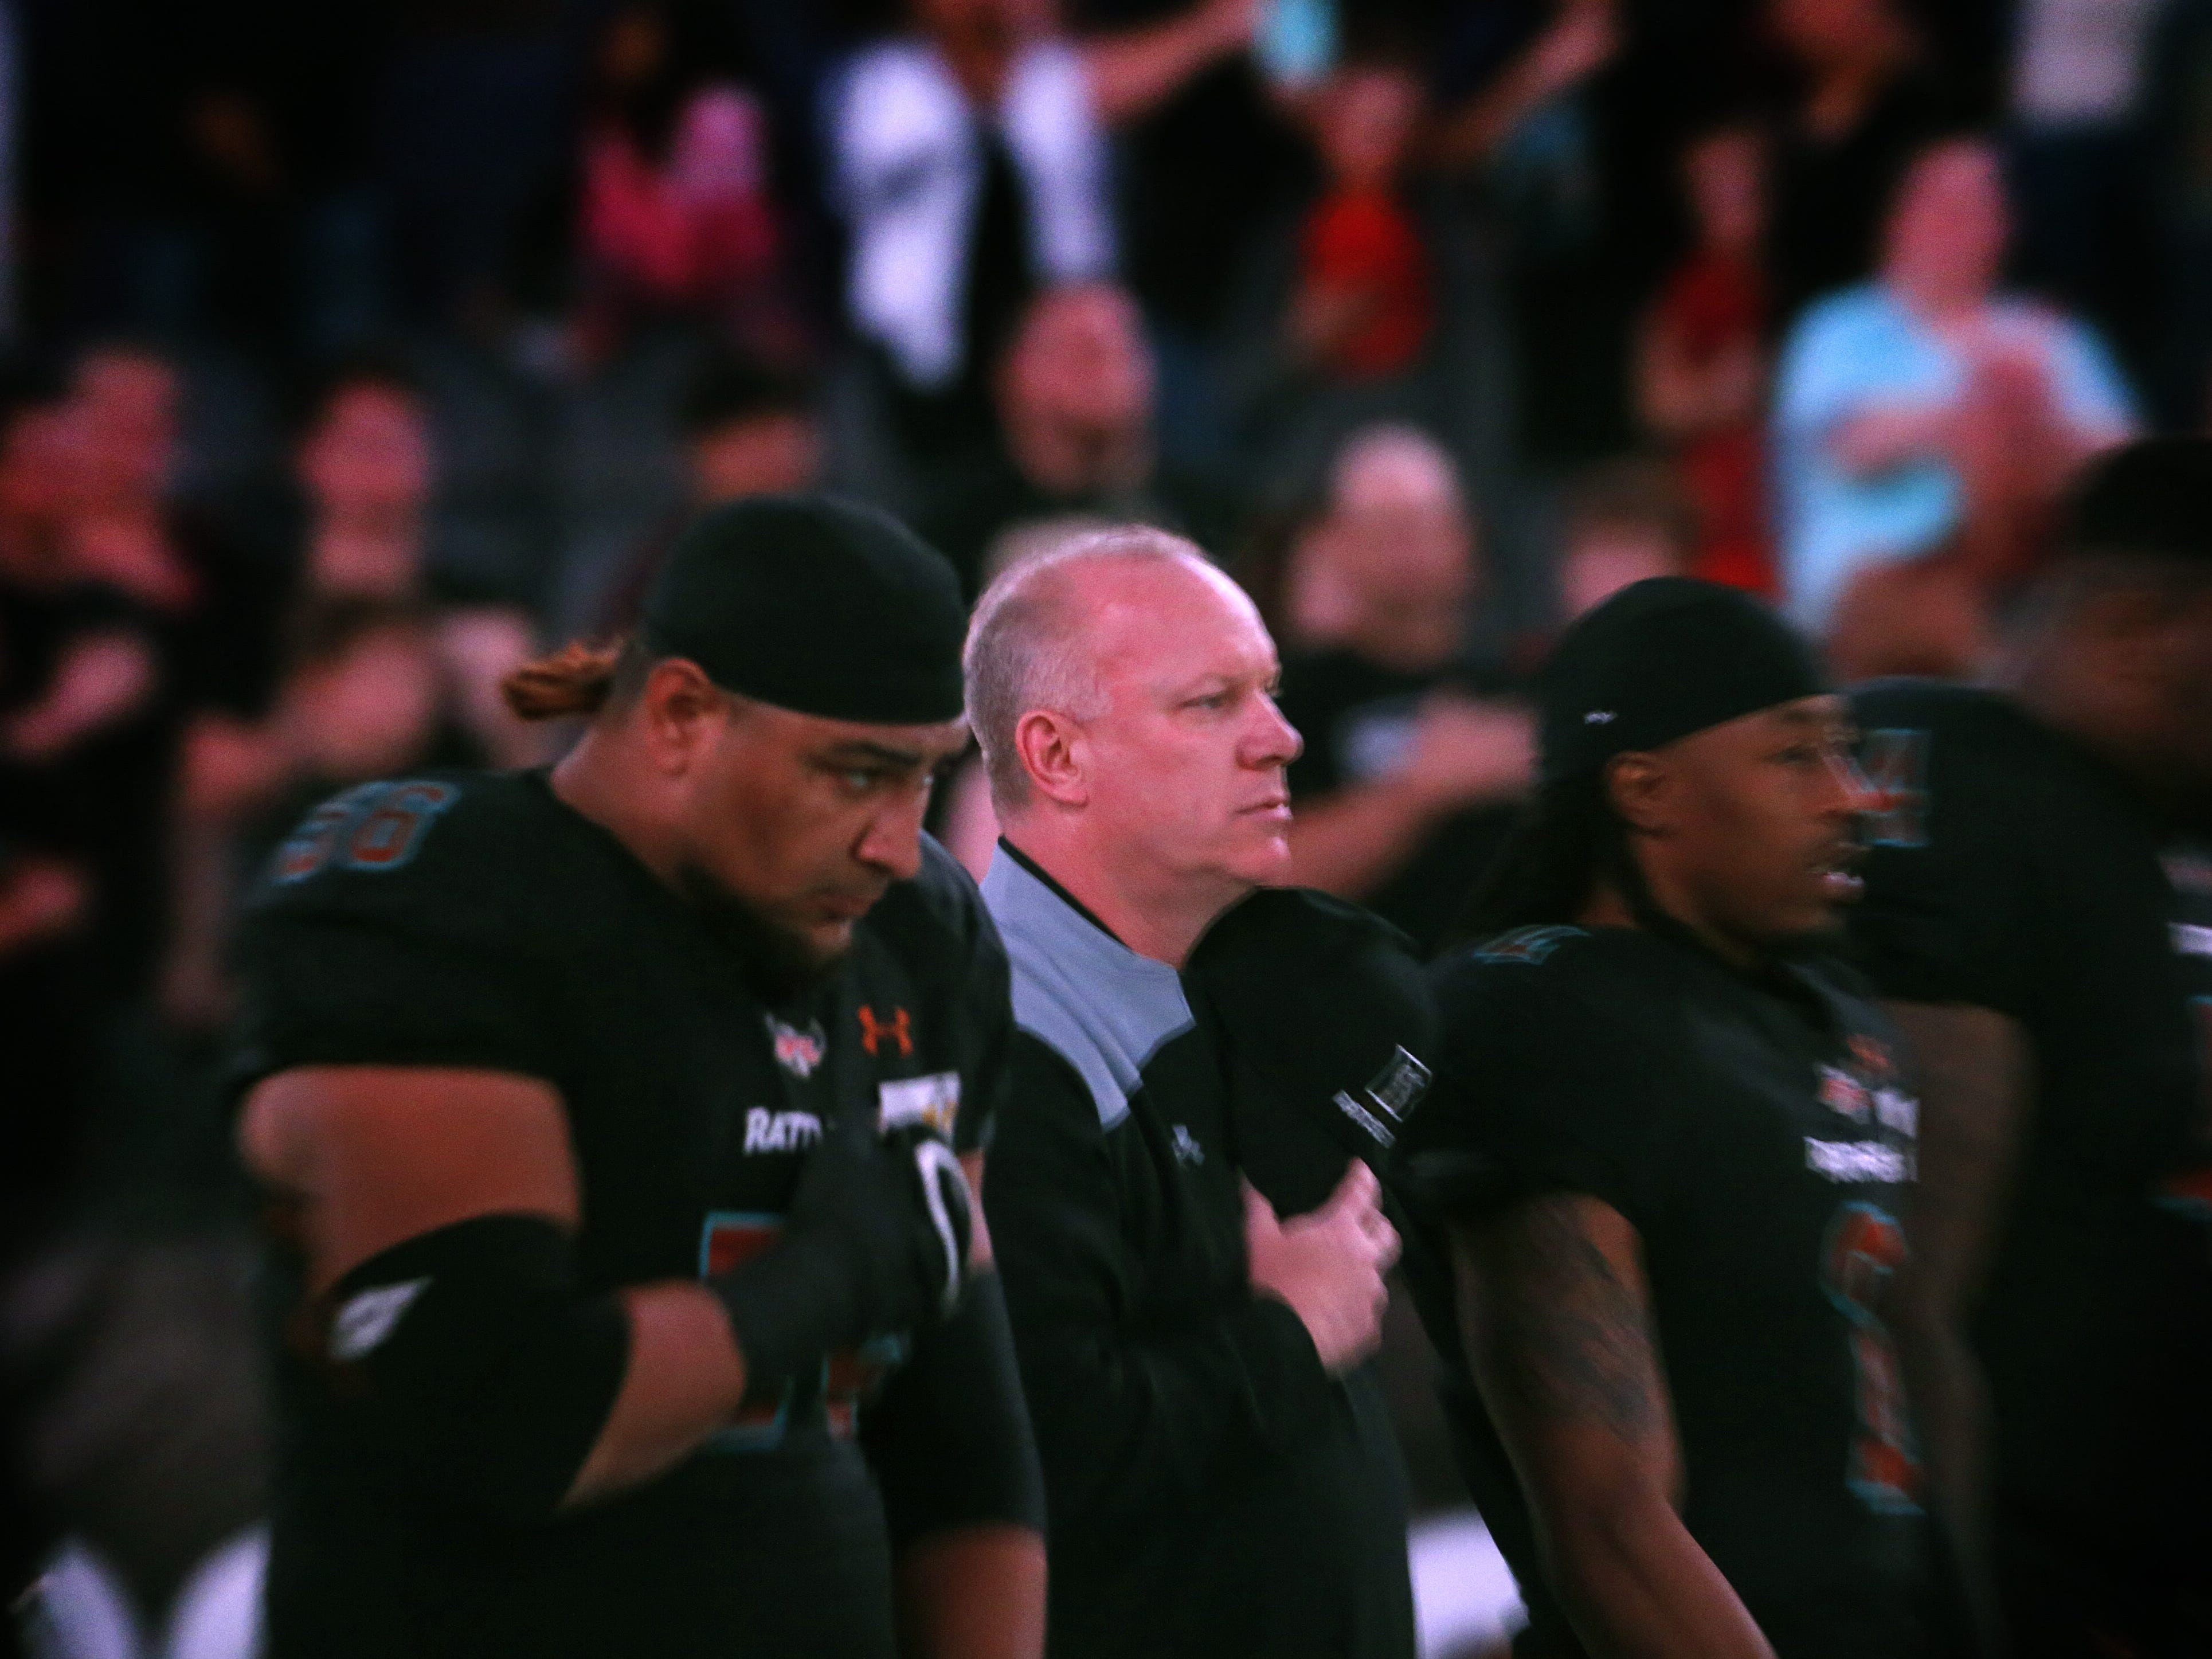 Rattlers head coach Kevin Guy listens to the national anthem before a game against the Sugar Skulls at Talking Stick Resort Arena in Phoenix, Ariz. on March 16, 2019.